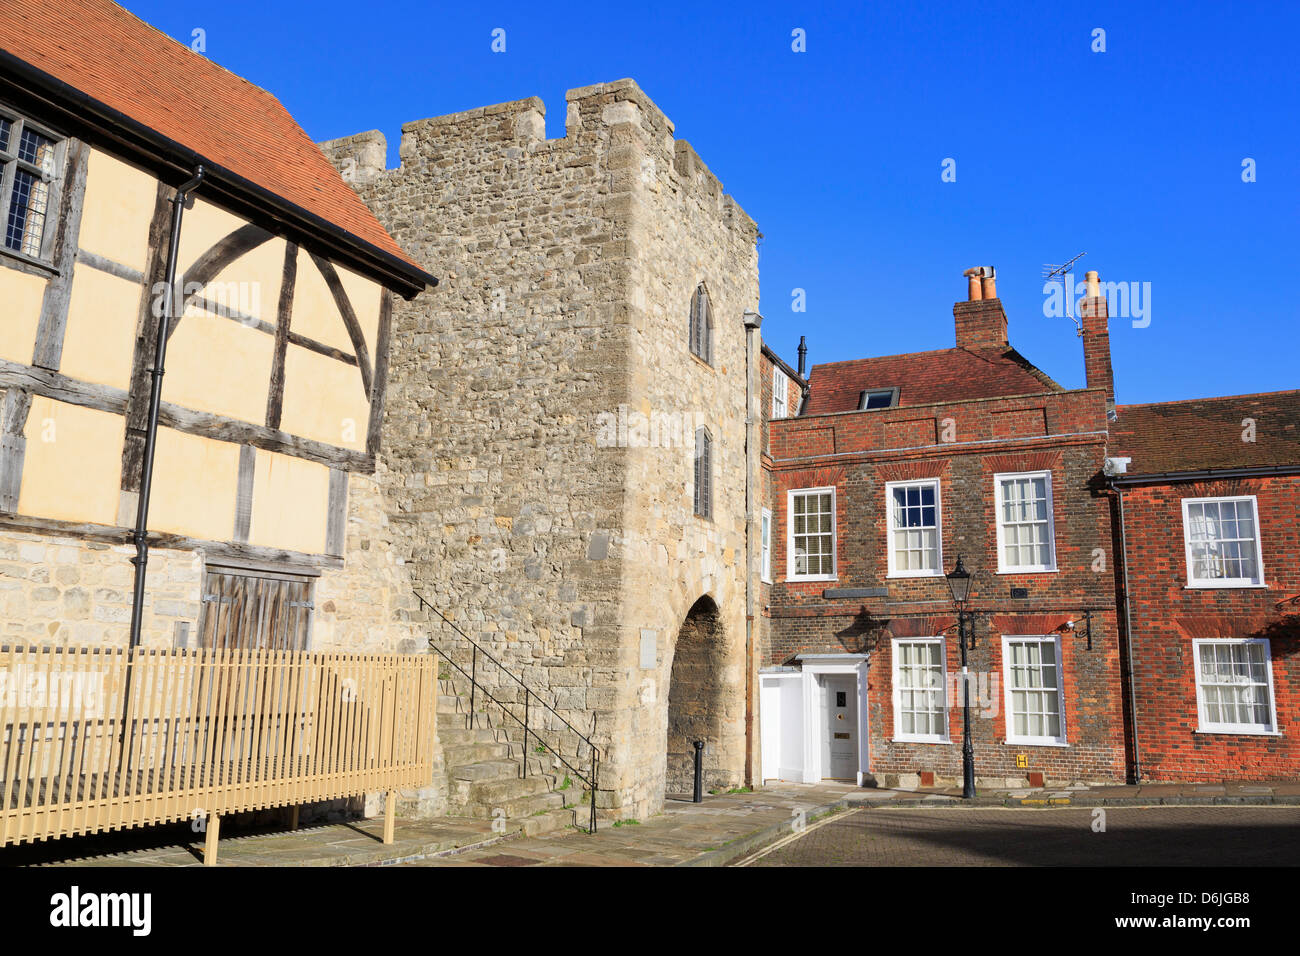 Westgate in Old Town Walls, Southampton, Hampshire, England, United Kingdom, Europe - Stock Image